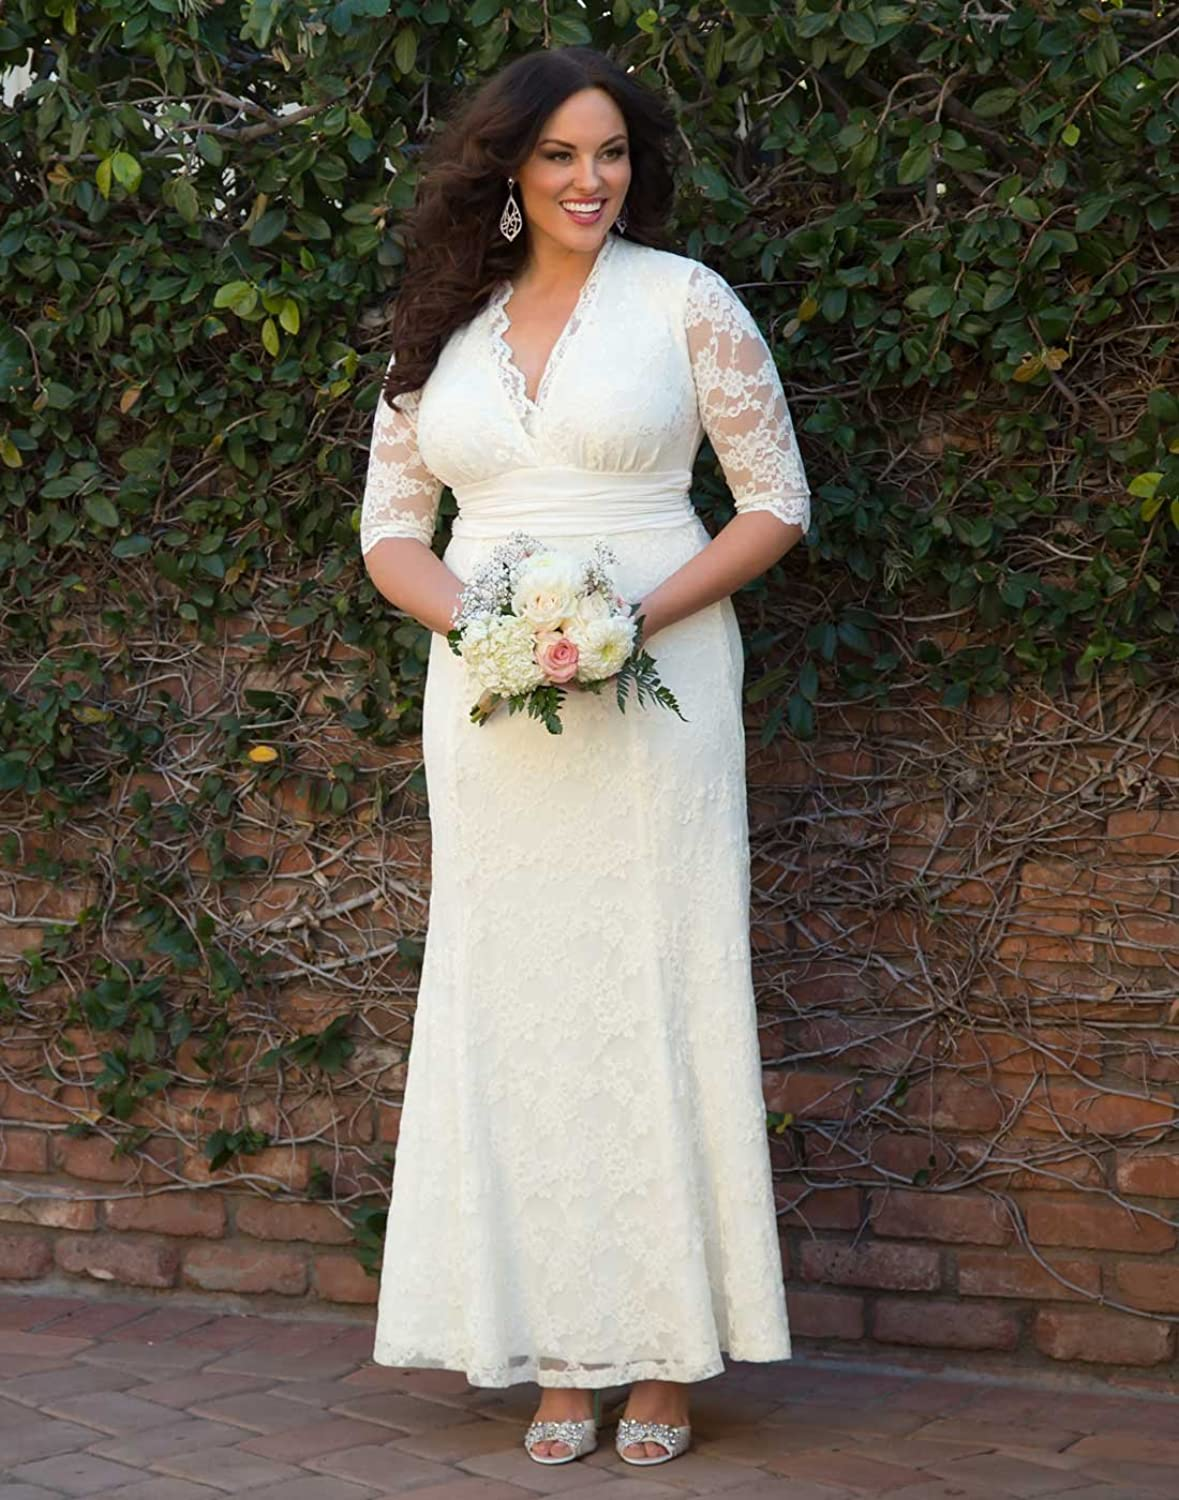 Amour lace wedding dress by kiyonna clothing